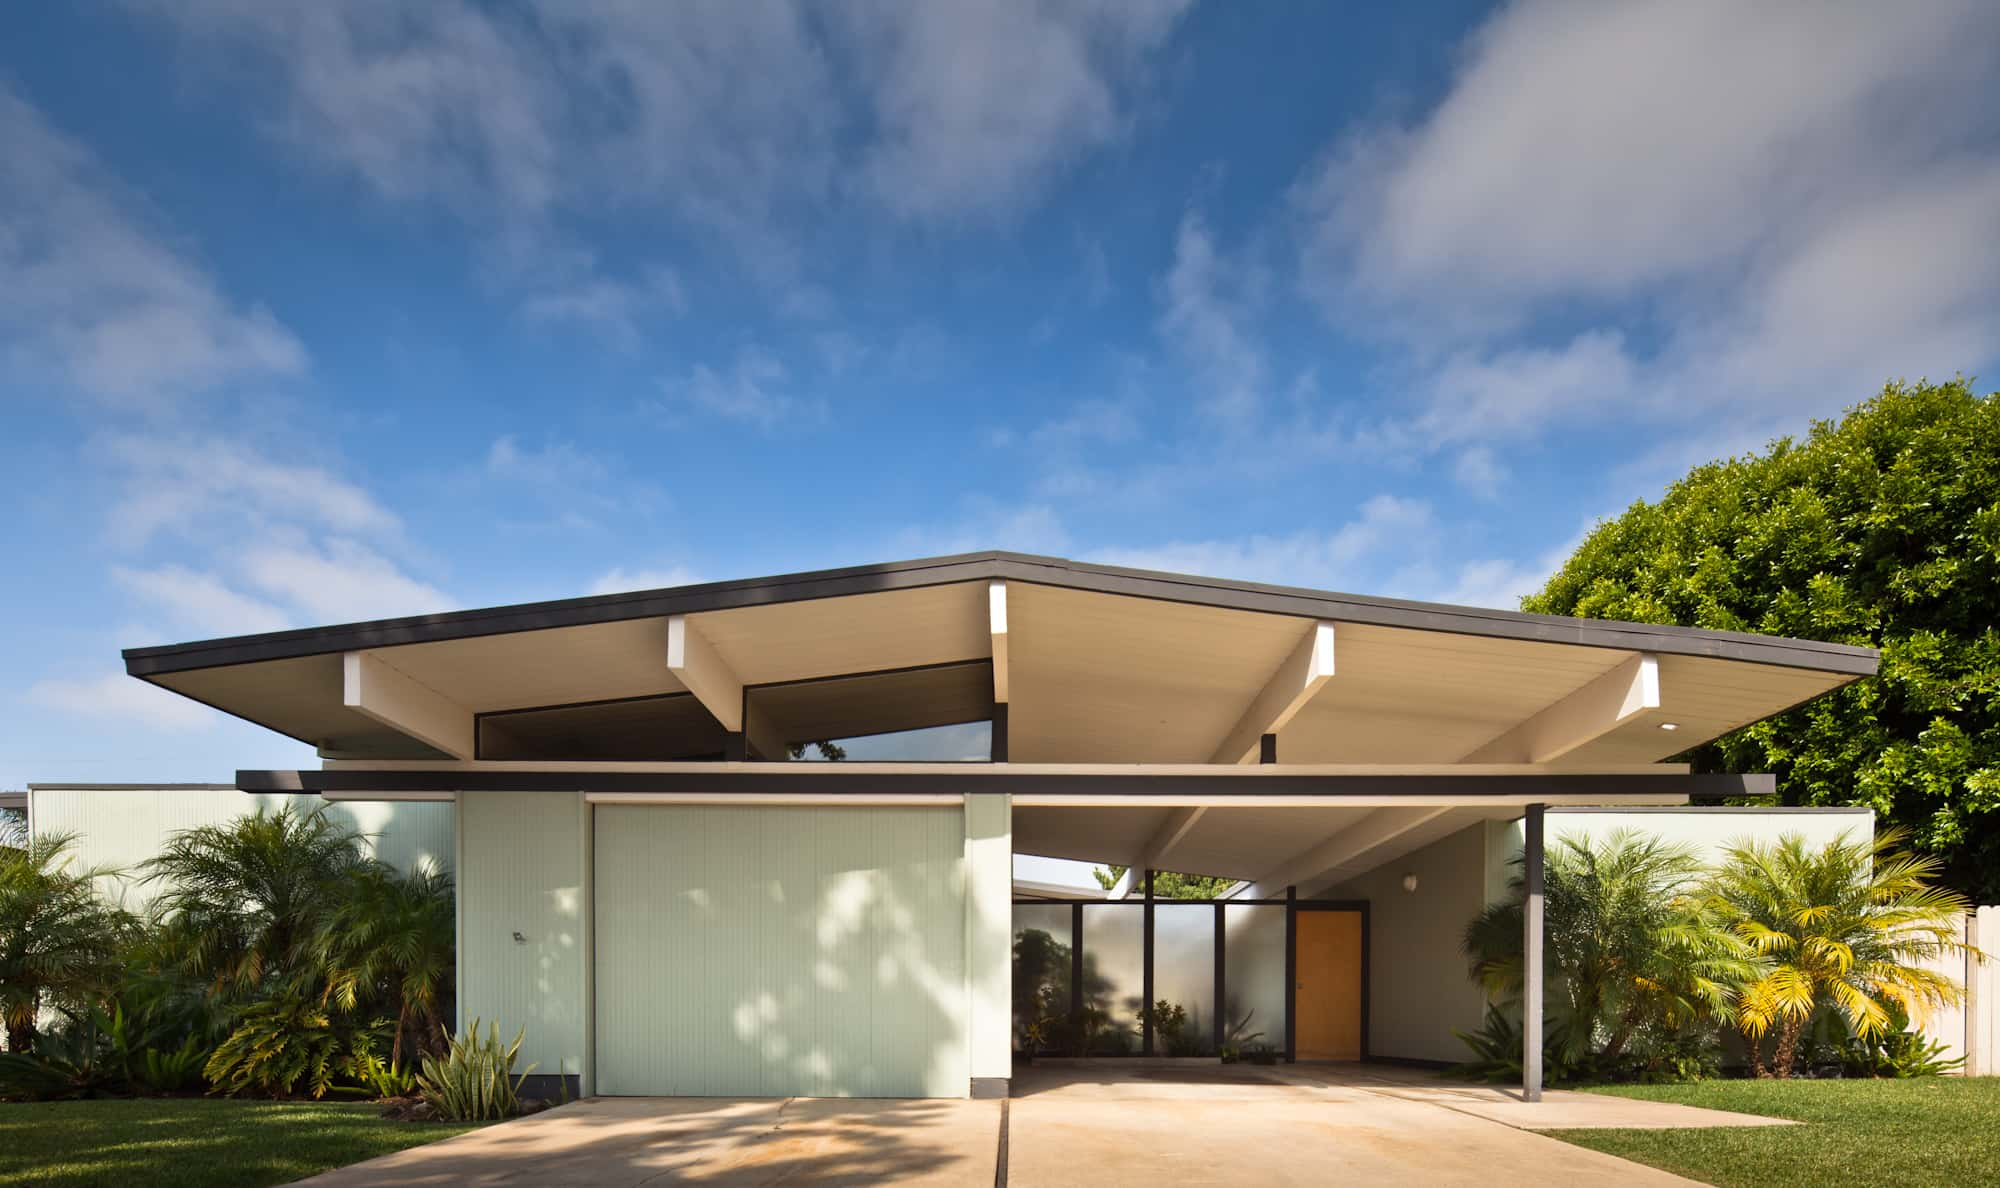 eichler homes from niche to mainstream